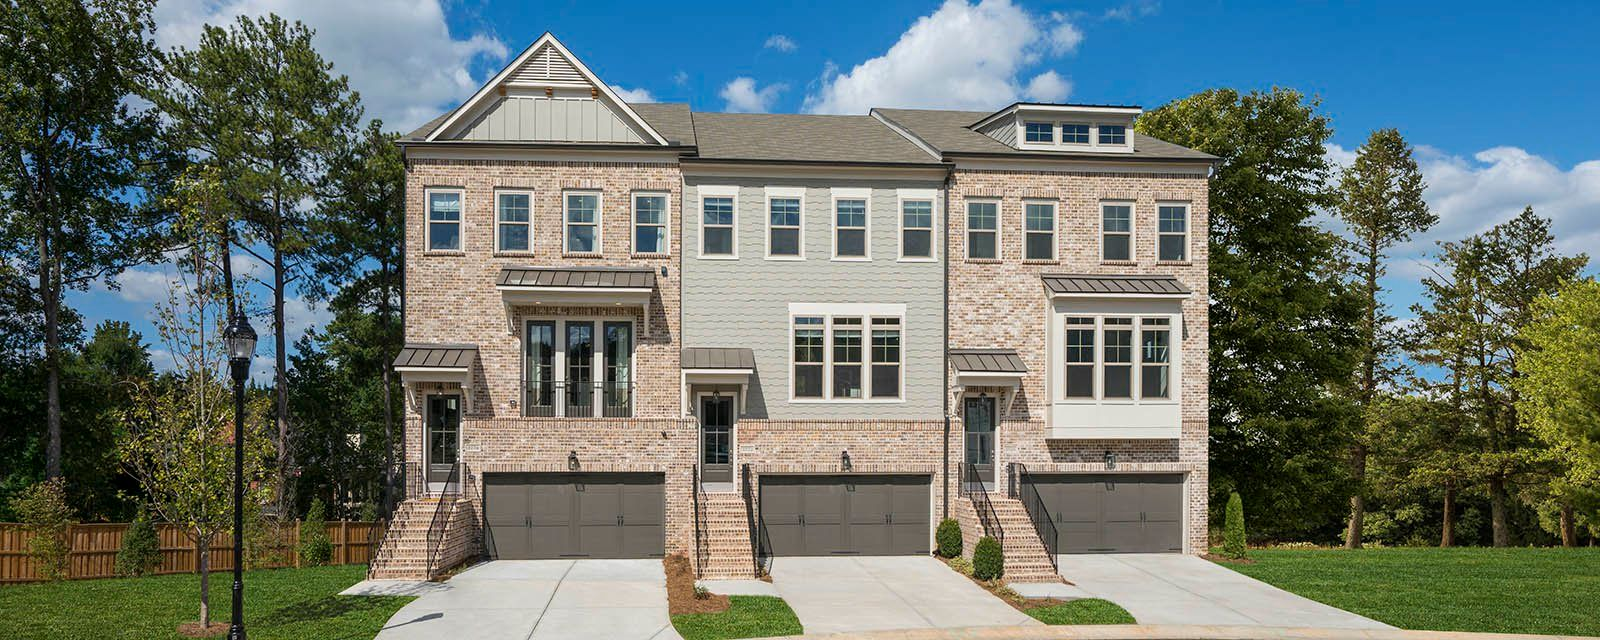 Multi Family voor Verkoop een t Easton 2380 Montford Place Smyrna, Georgia 30080 United States